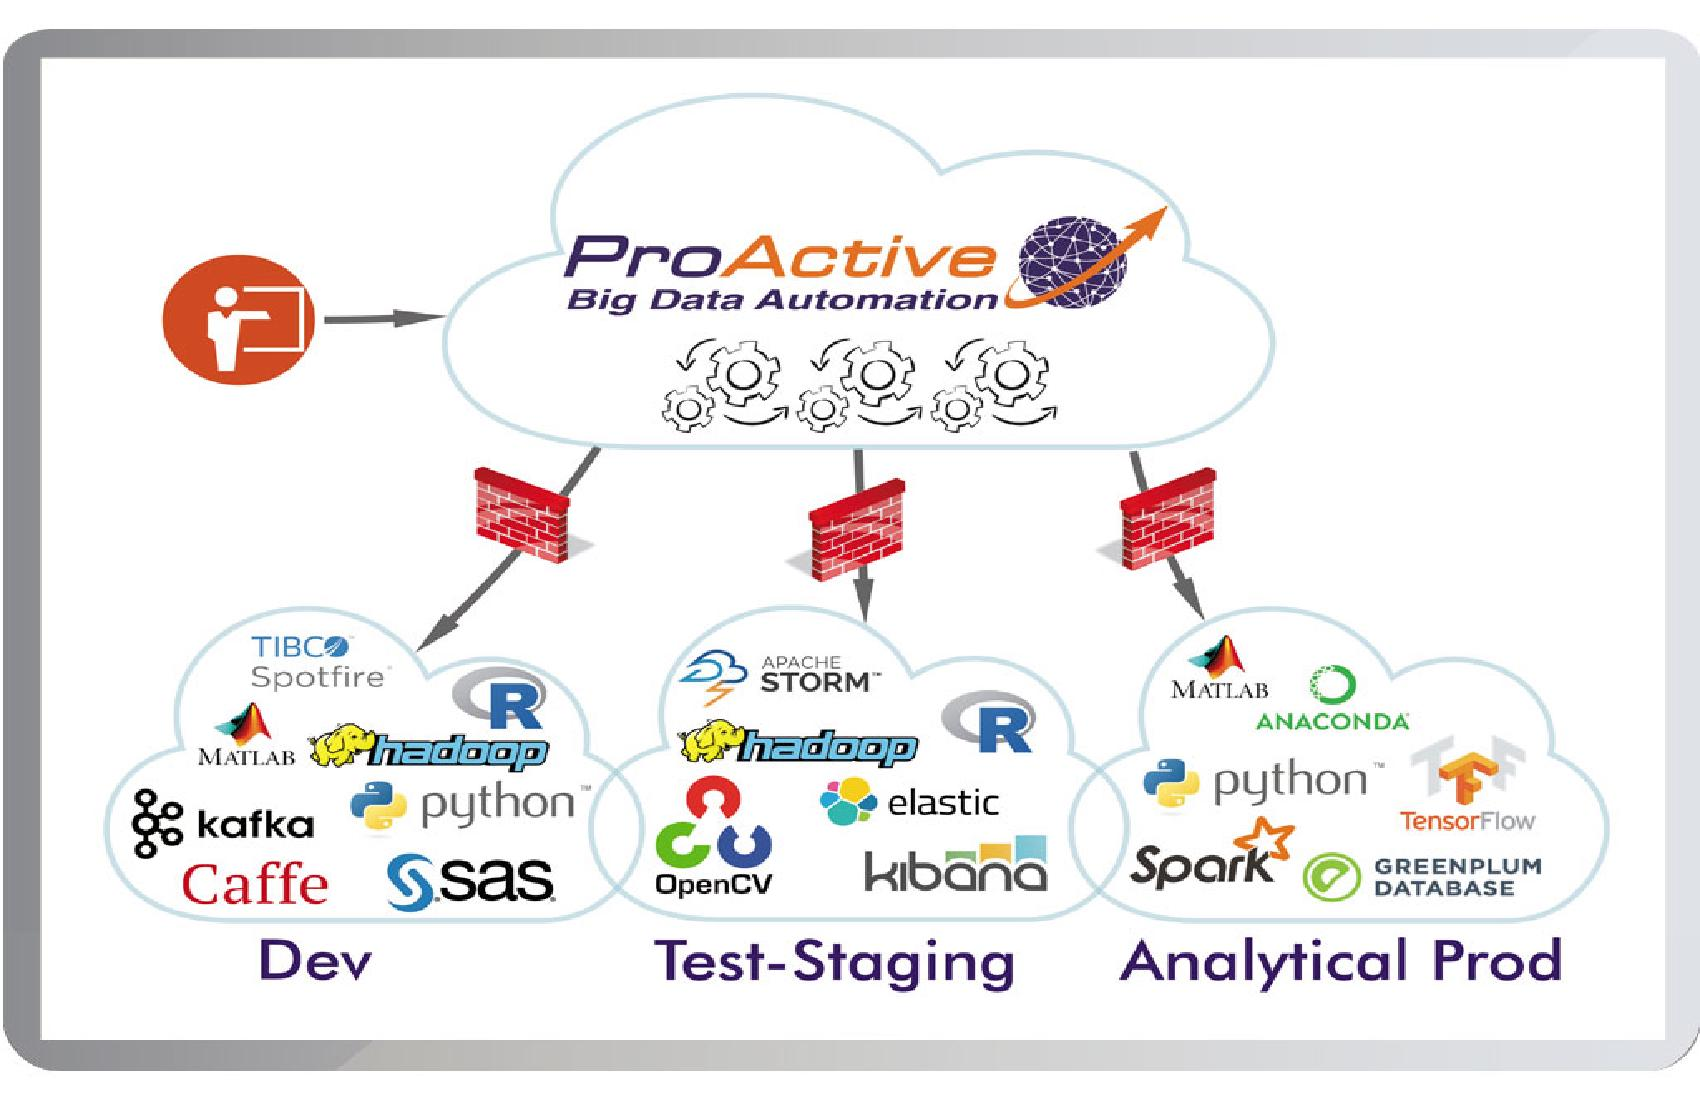 images/product-screenshots/proactive-big-data-automation-orchestration-frame.jpg